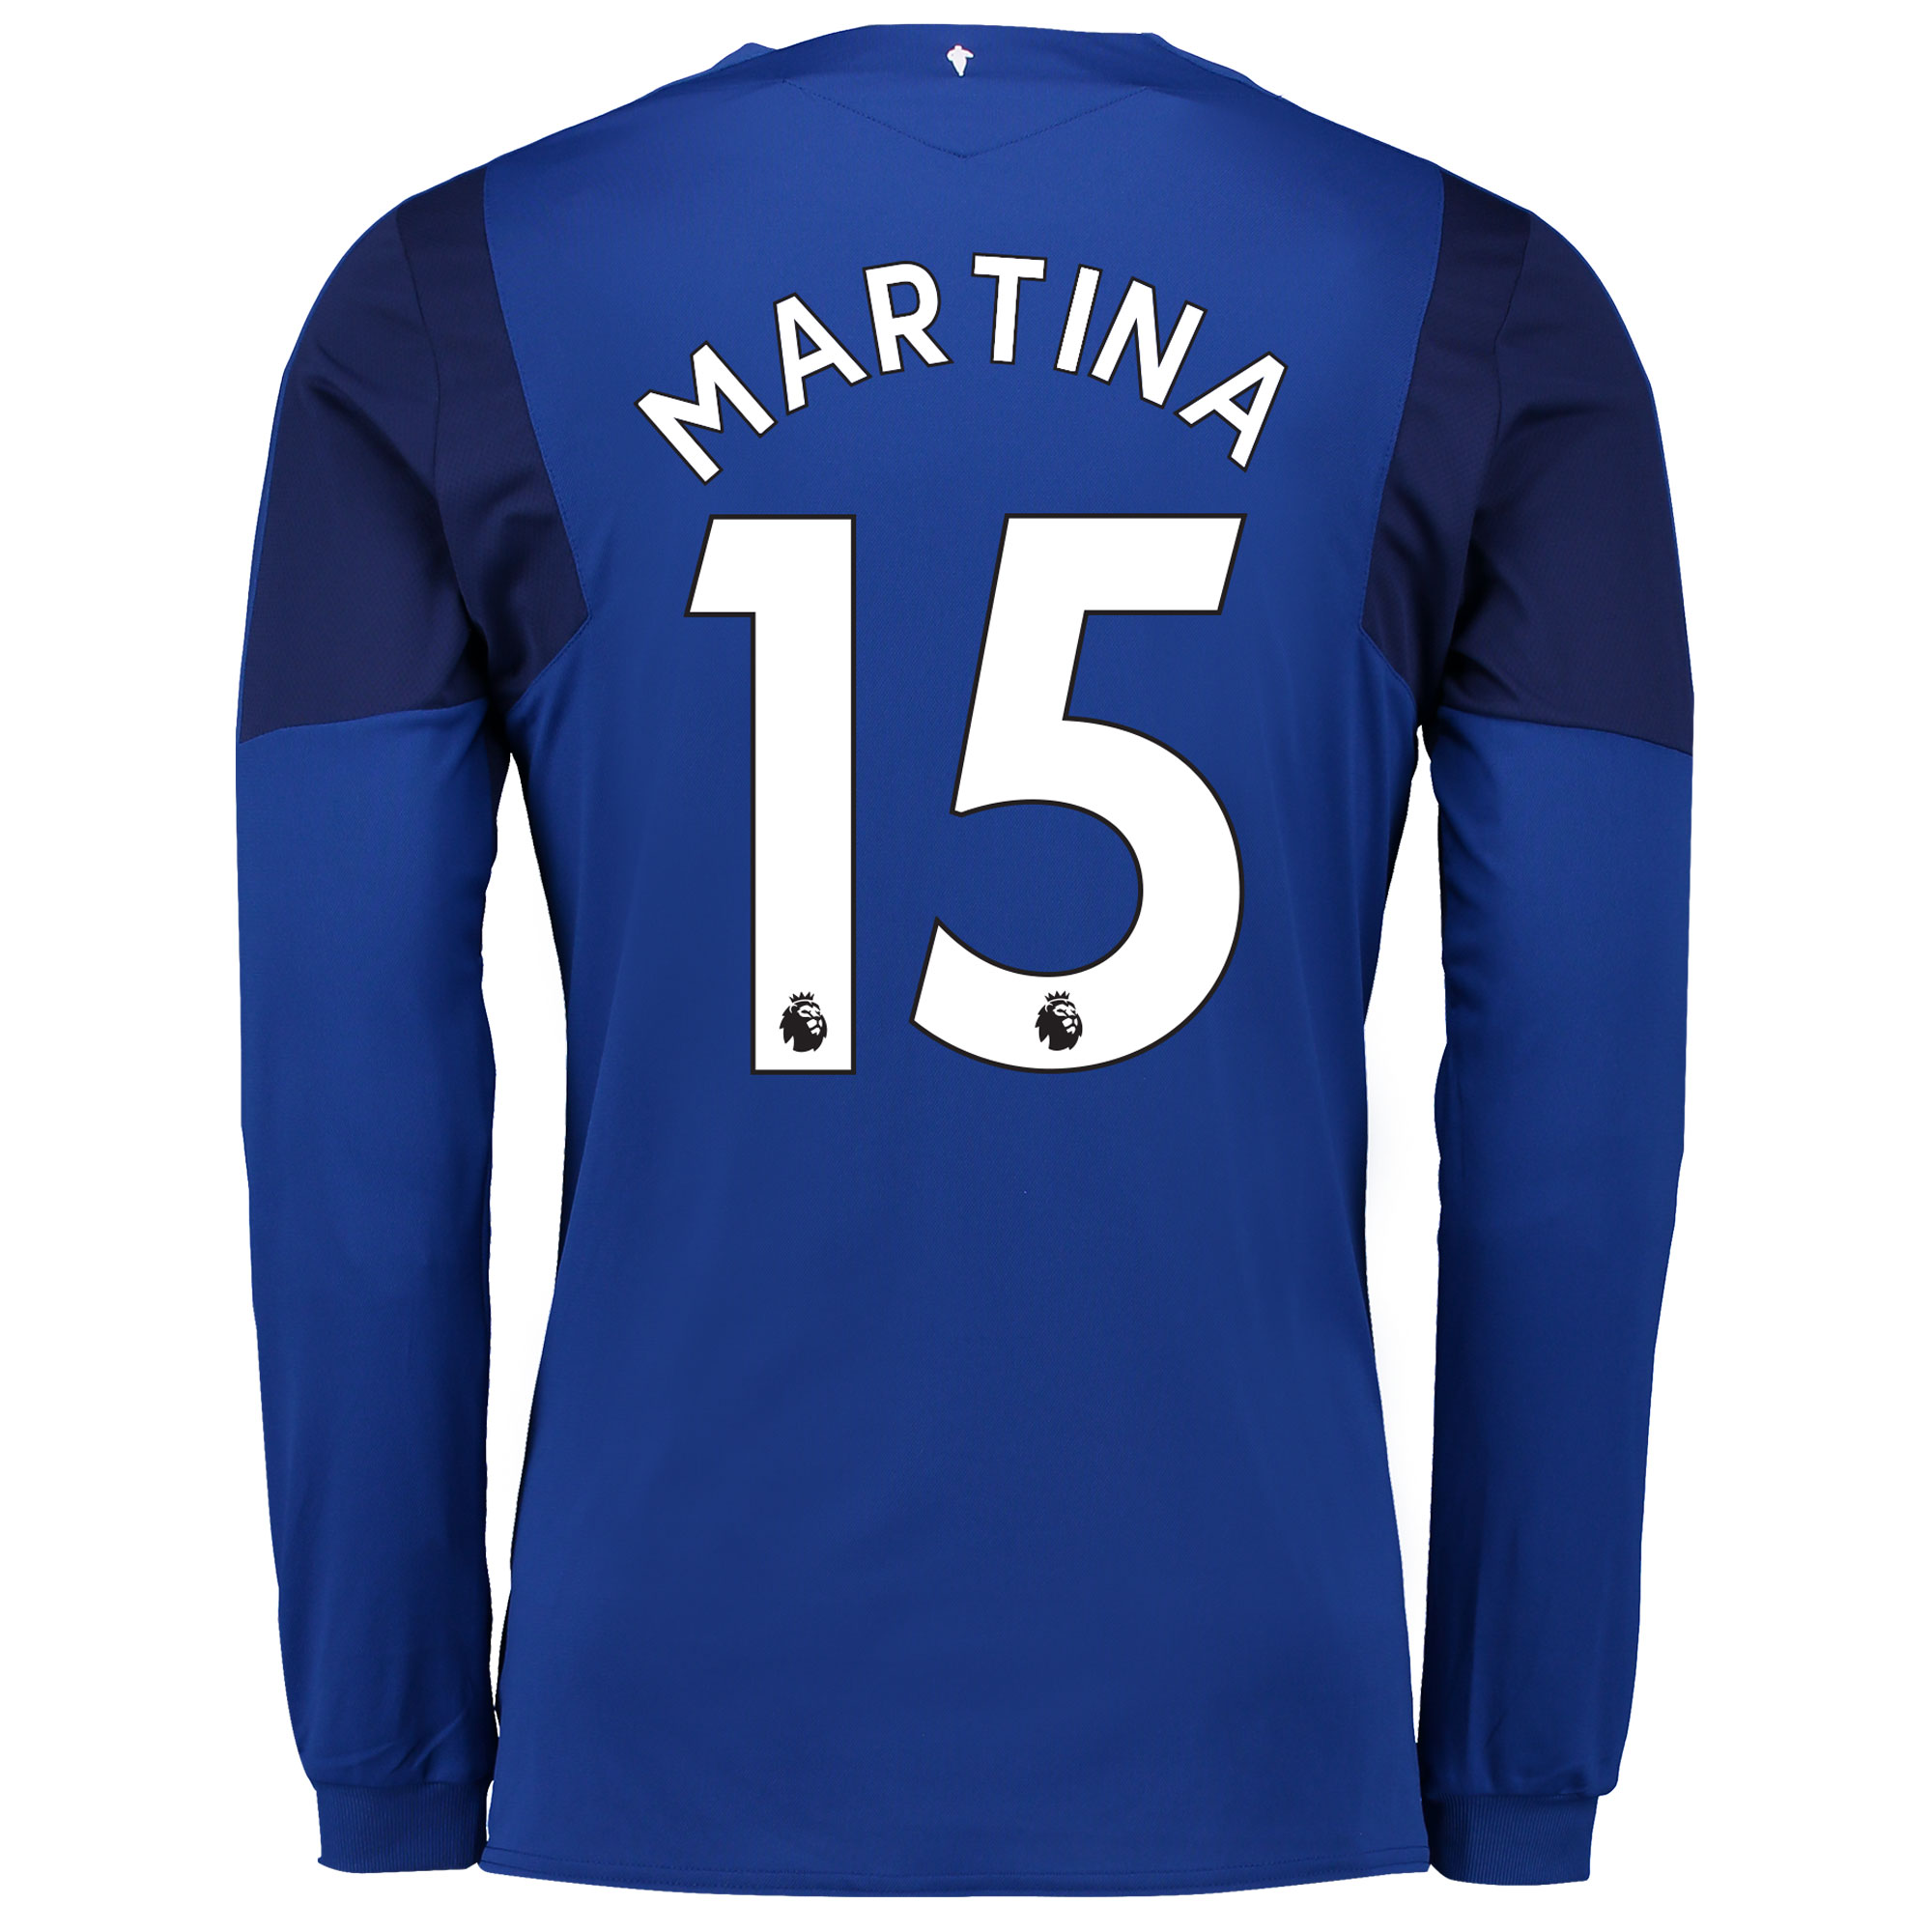 Everton Home Shirt 2017/18 - Long Sleeved with Martina 15 printing